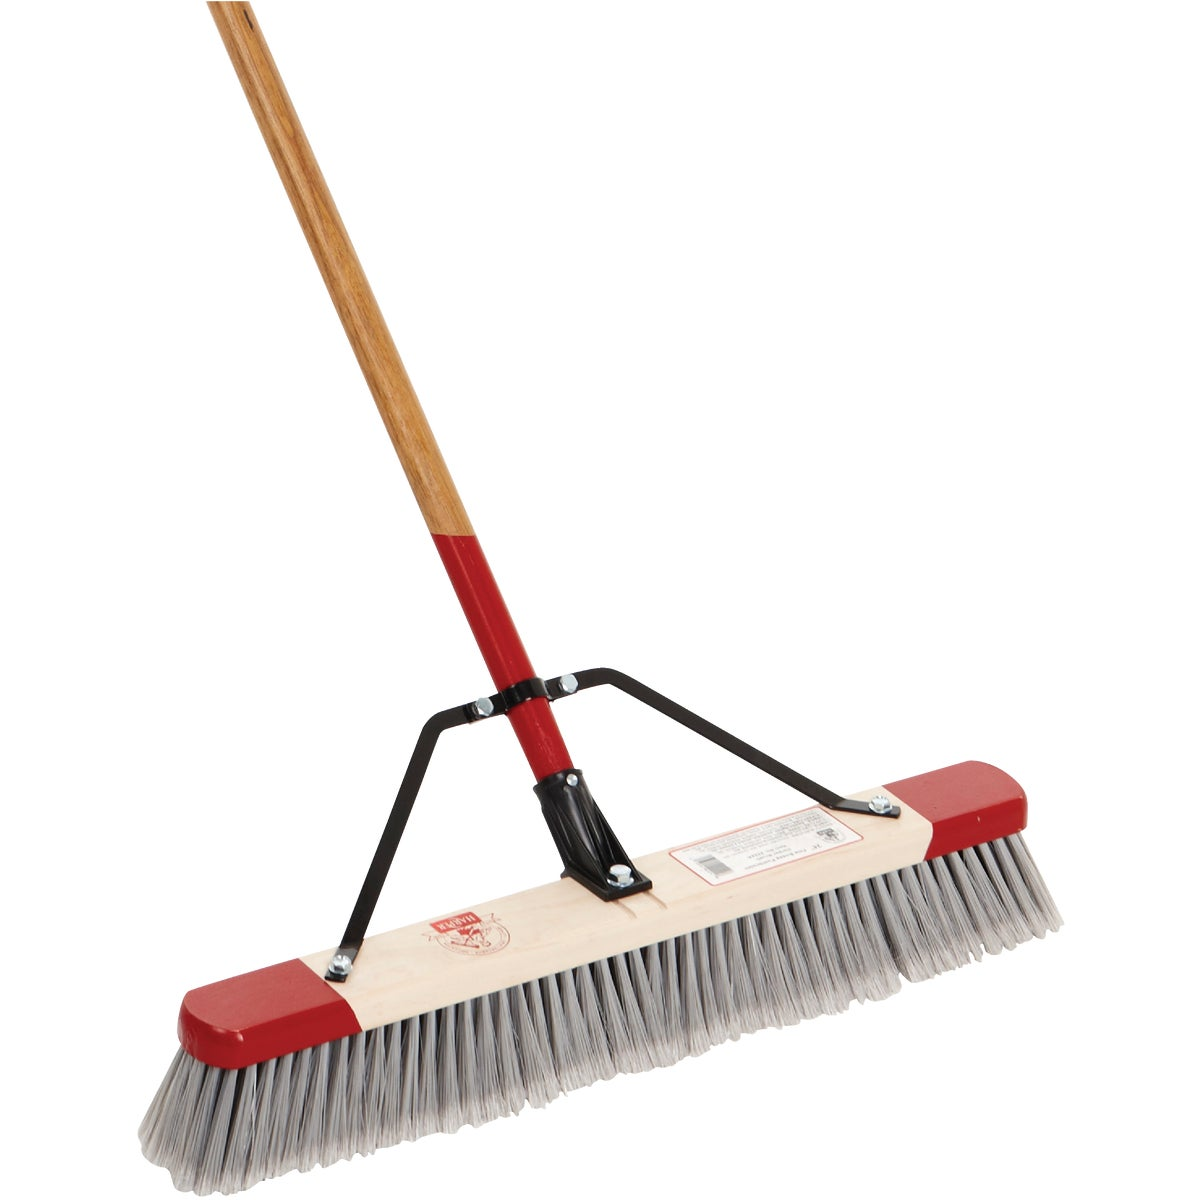 "24"" FINE SWEEP BROOM - 2224A by Harper Brush Incom"